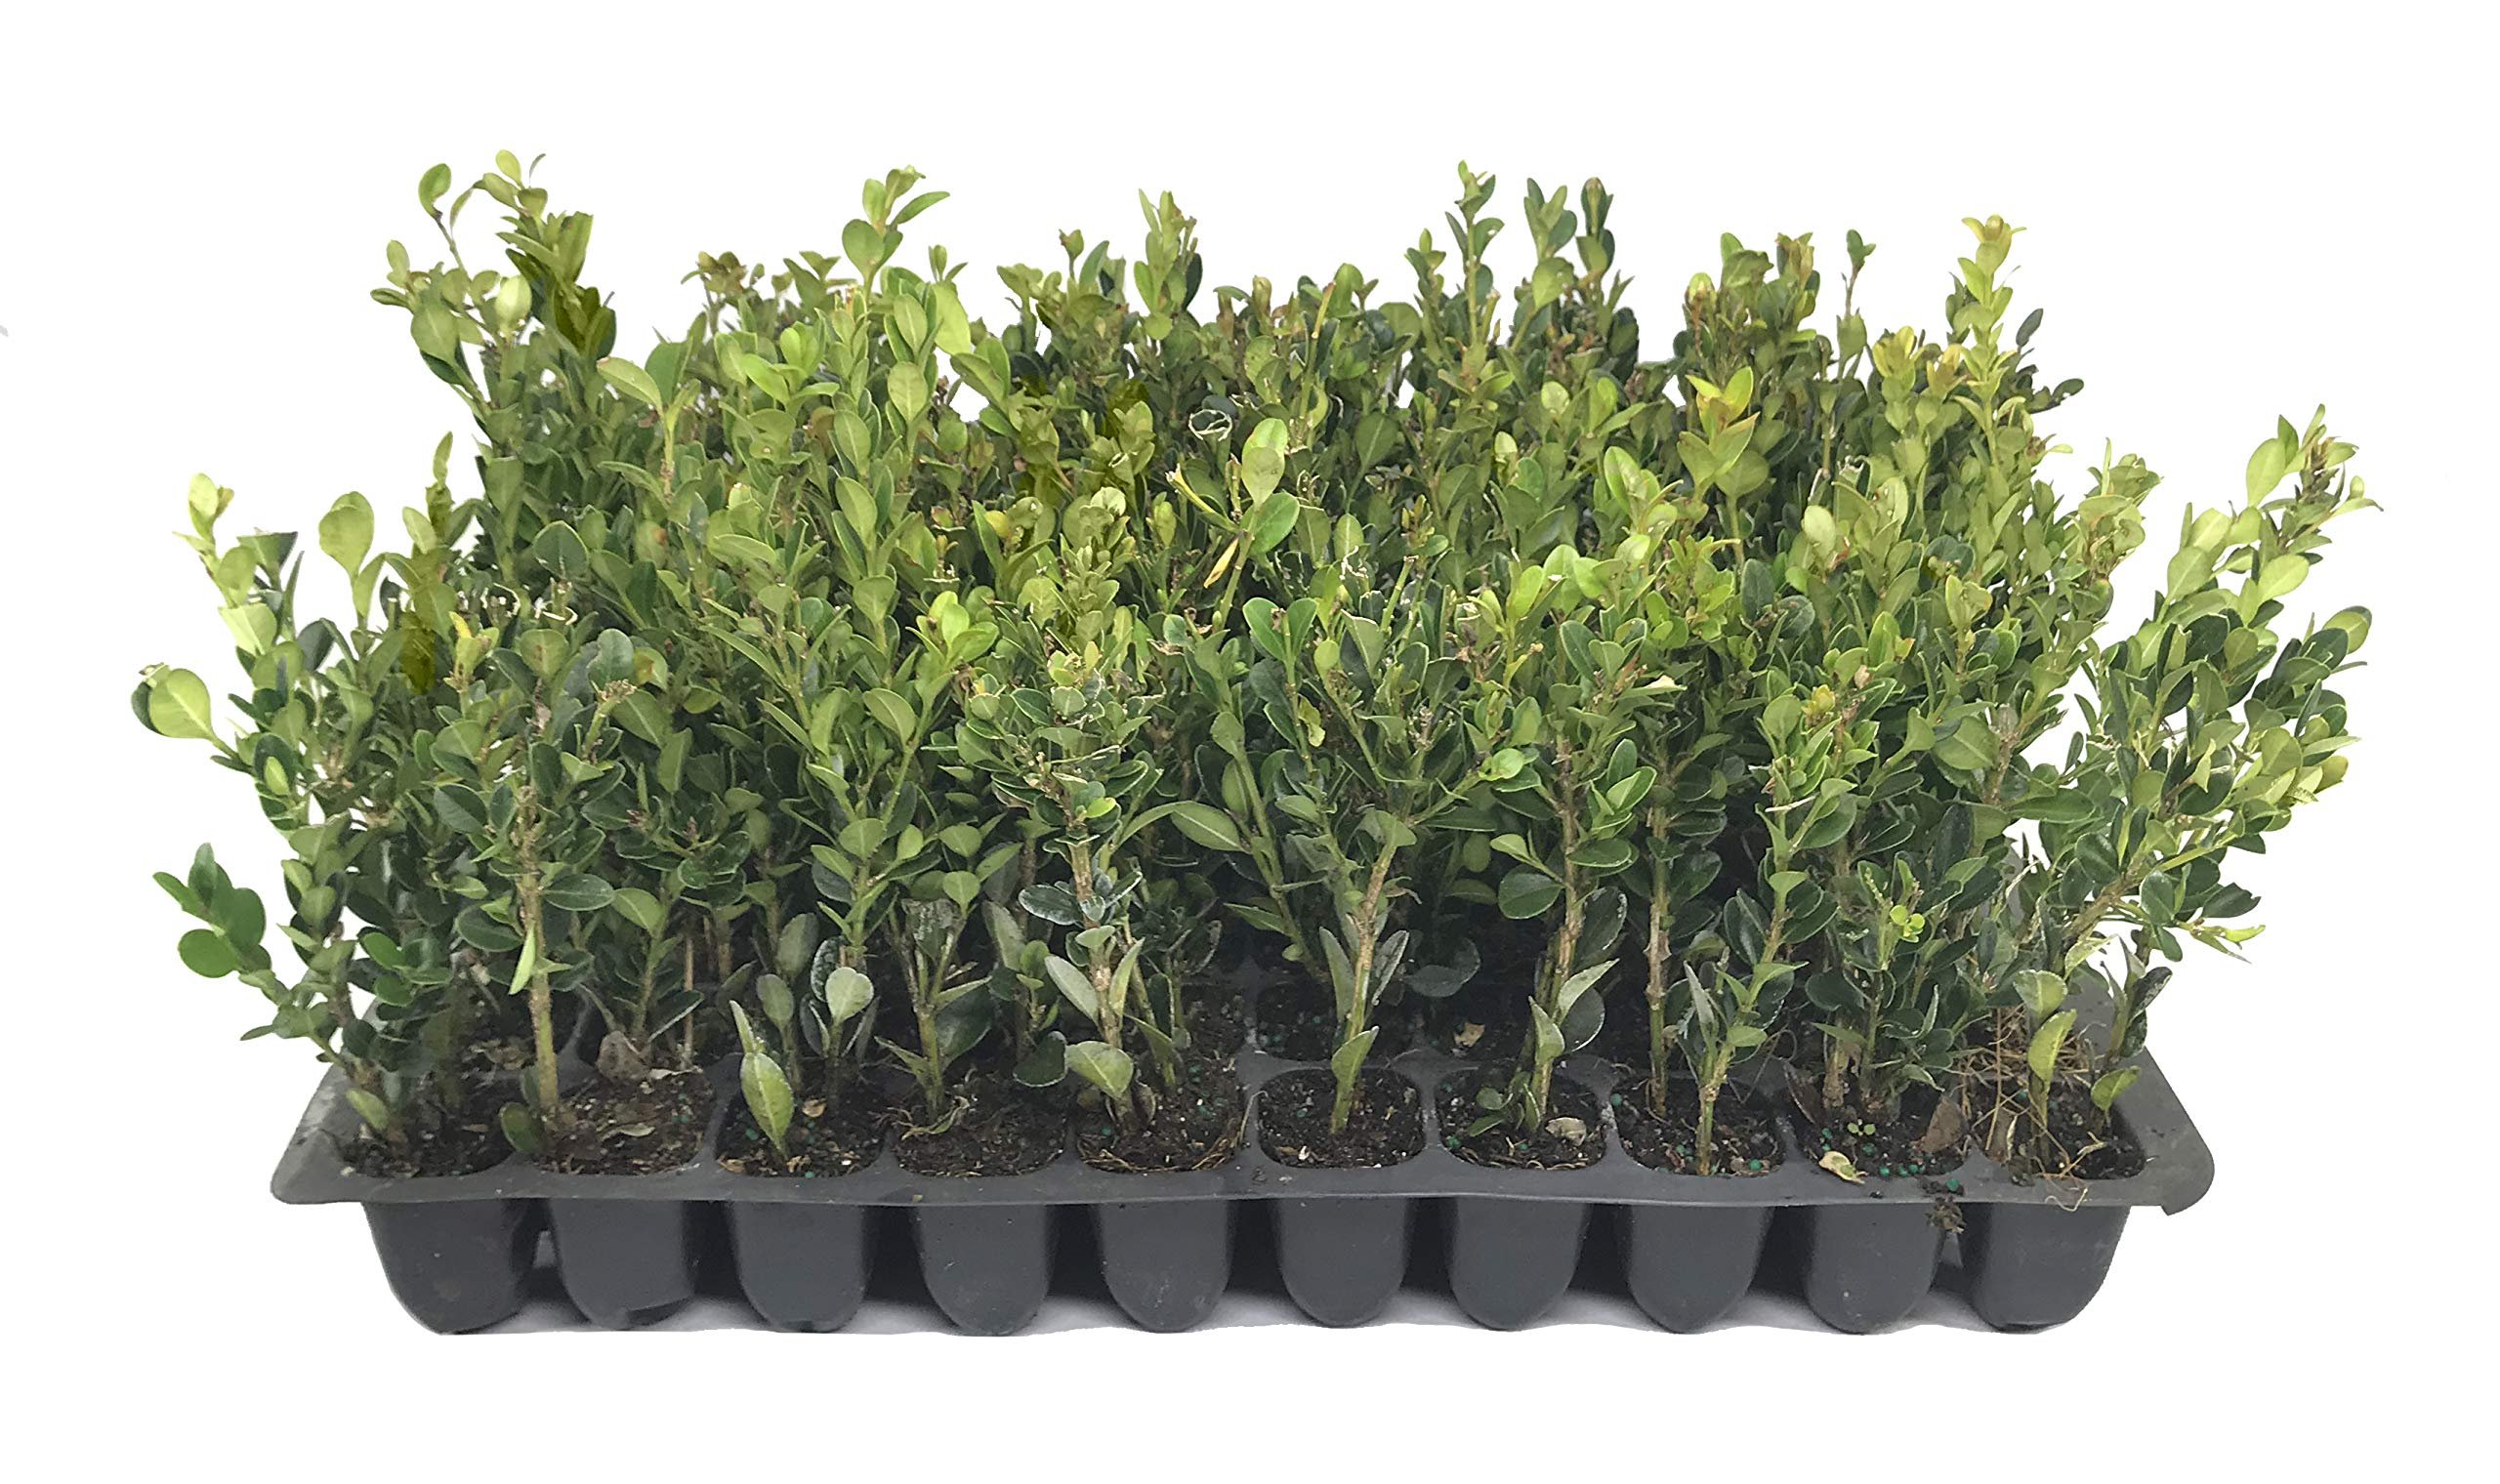 Winter Gem Boxwood - 10 Live Plants - 2'' Pot Size - Buxus Microphylla Japonica - Fast Growing Cold Hardy Formal Evergreen Shrub by Florida Foliage